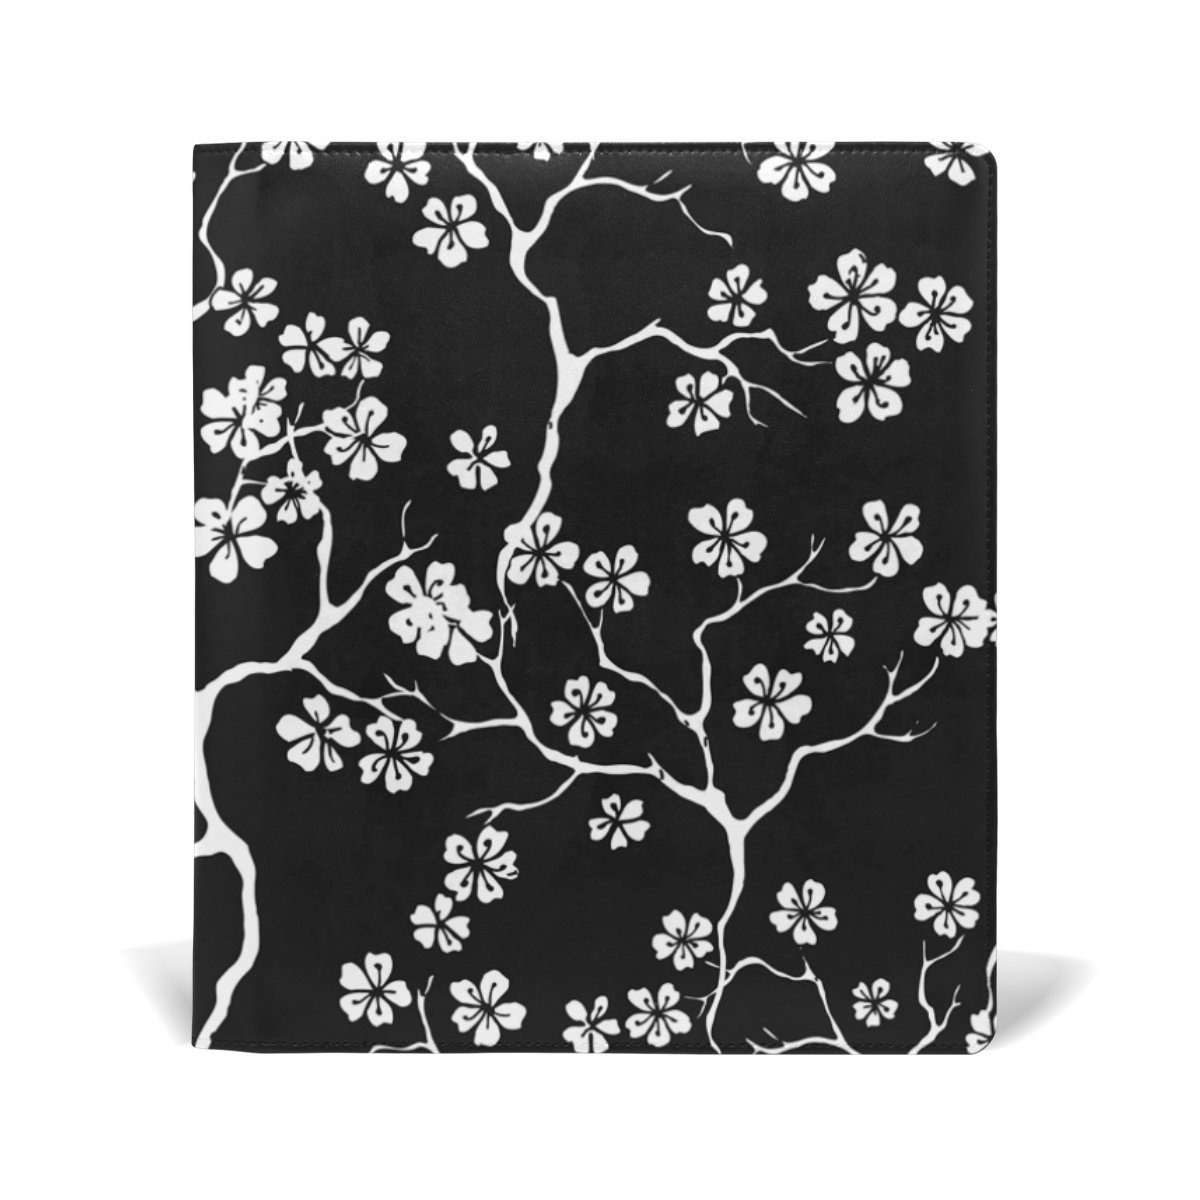 ColourLife Leather Book Covers for Textbooks Hardcovers White Flowers On Black School Books Protector 9 x 11 inches